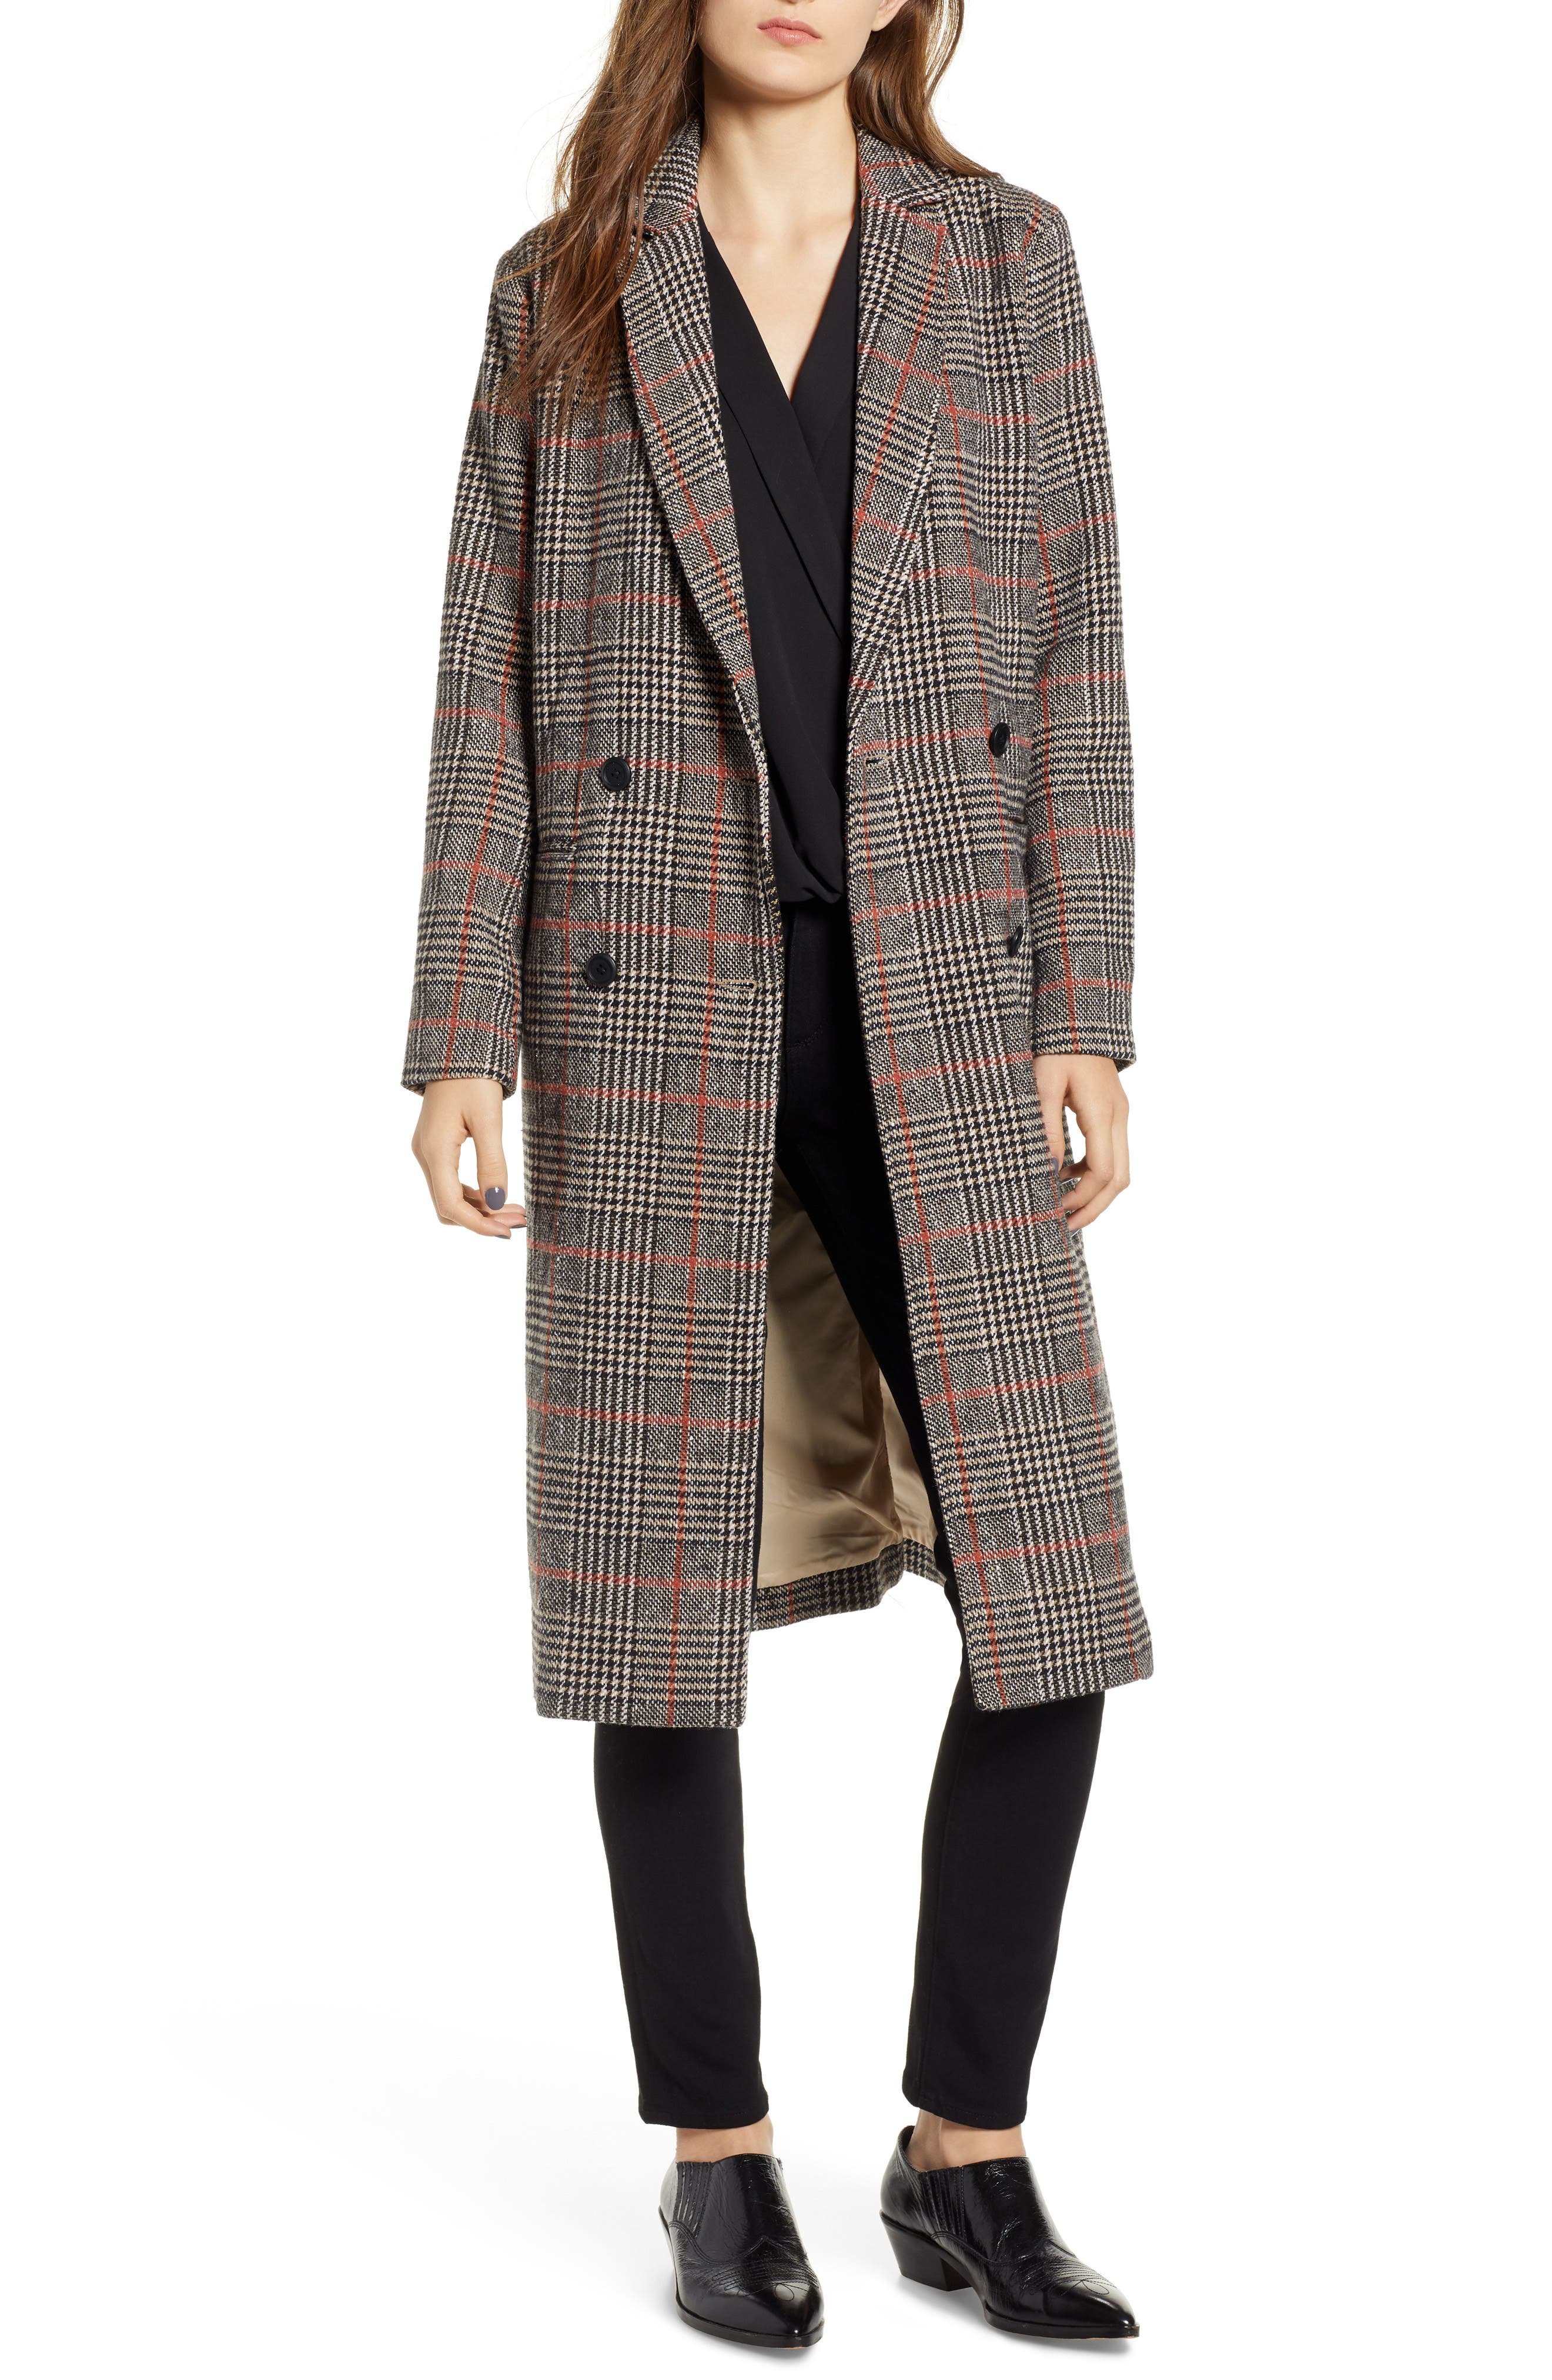 CUPCAKES AND CASHMERE Plaid Duster Jacket, Main, color, 020